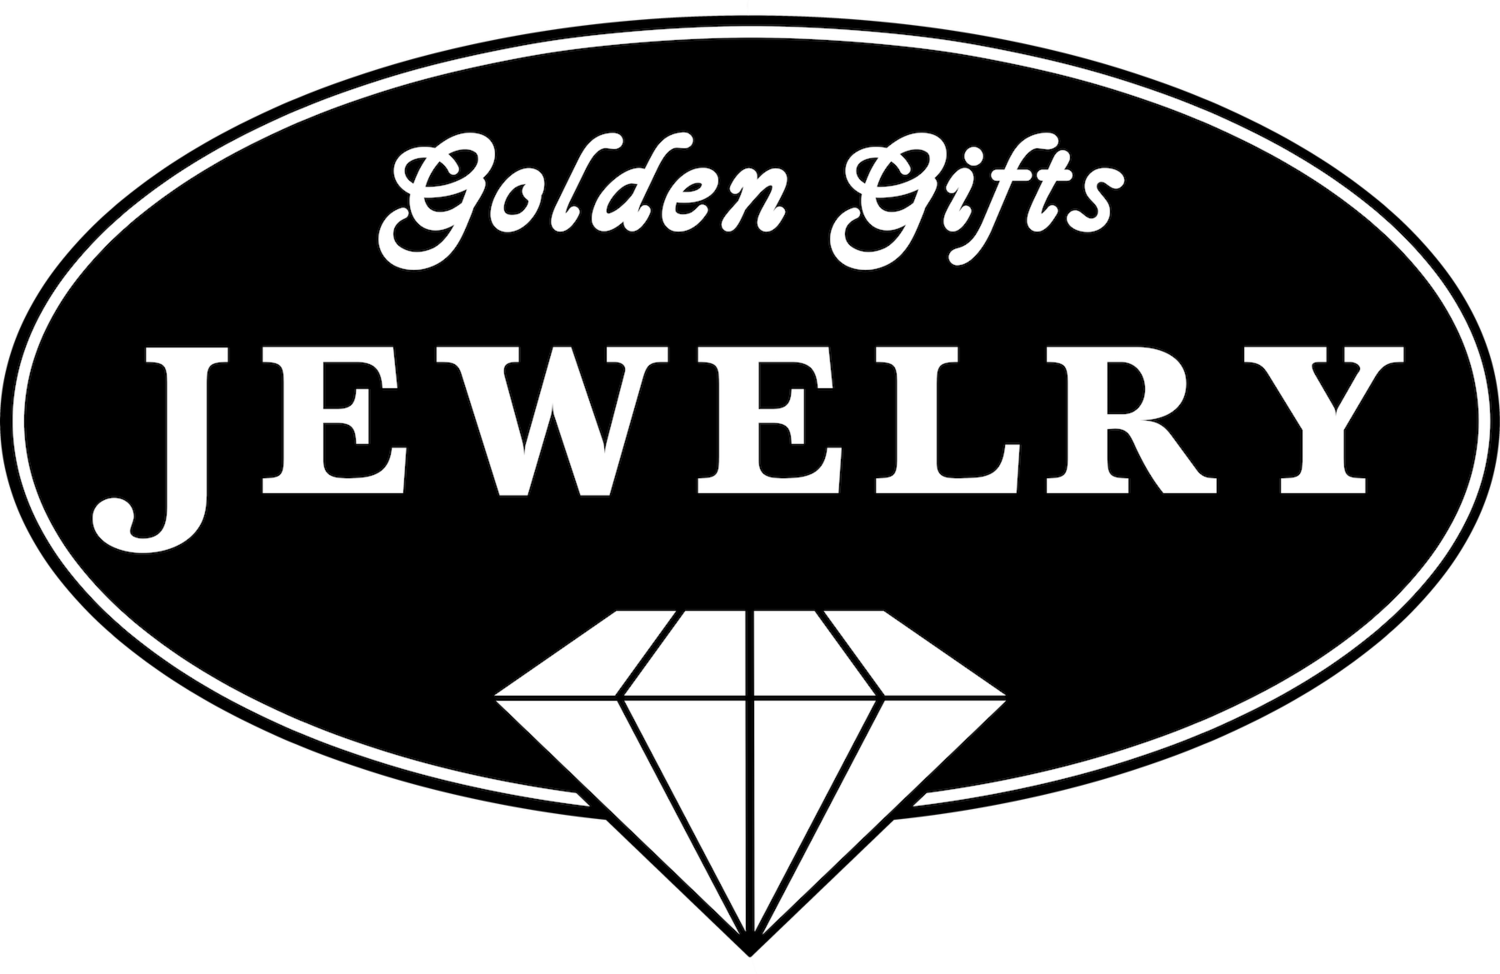 Golden Gifts Jewelry